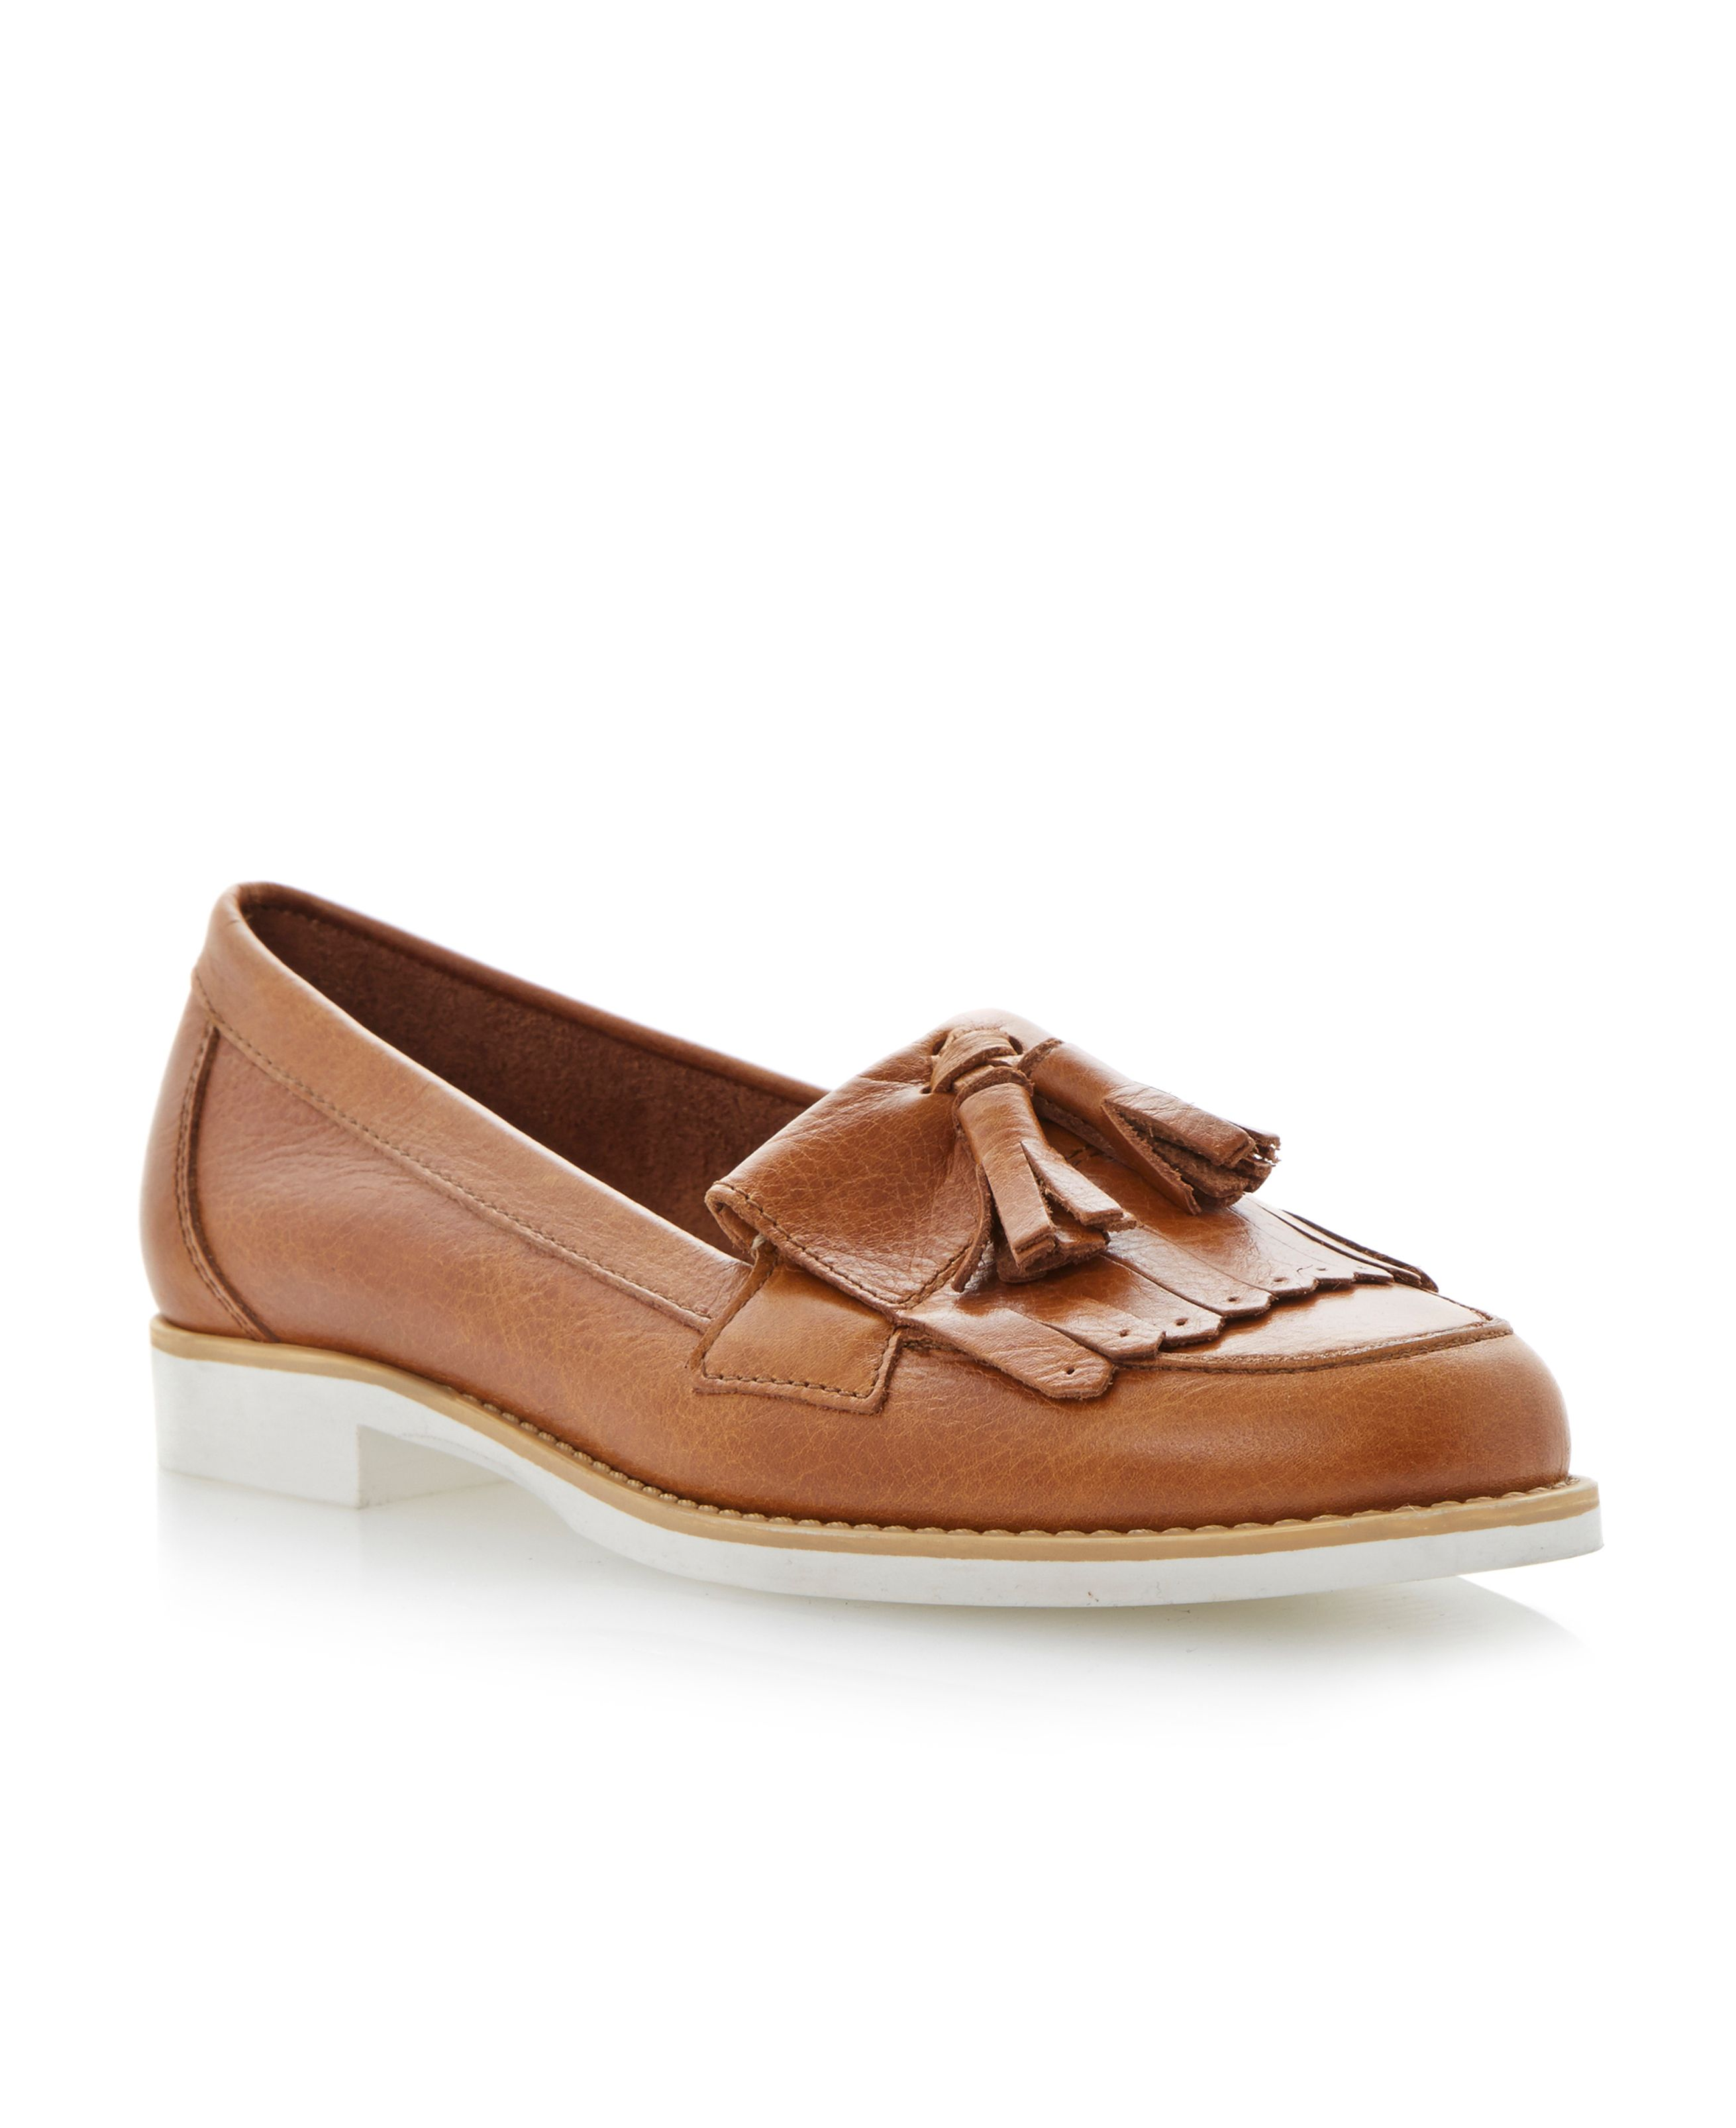 Lennon leather almond toe loafer shoes